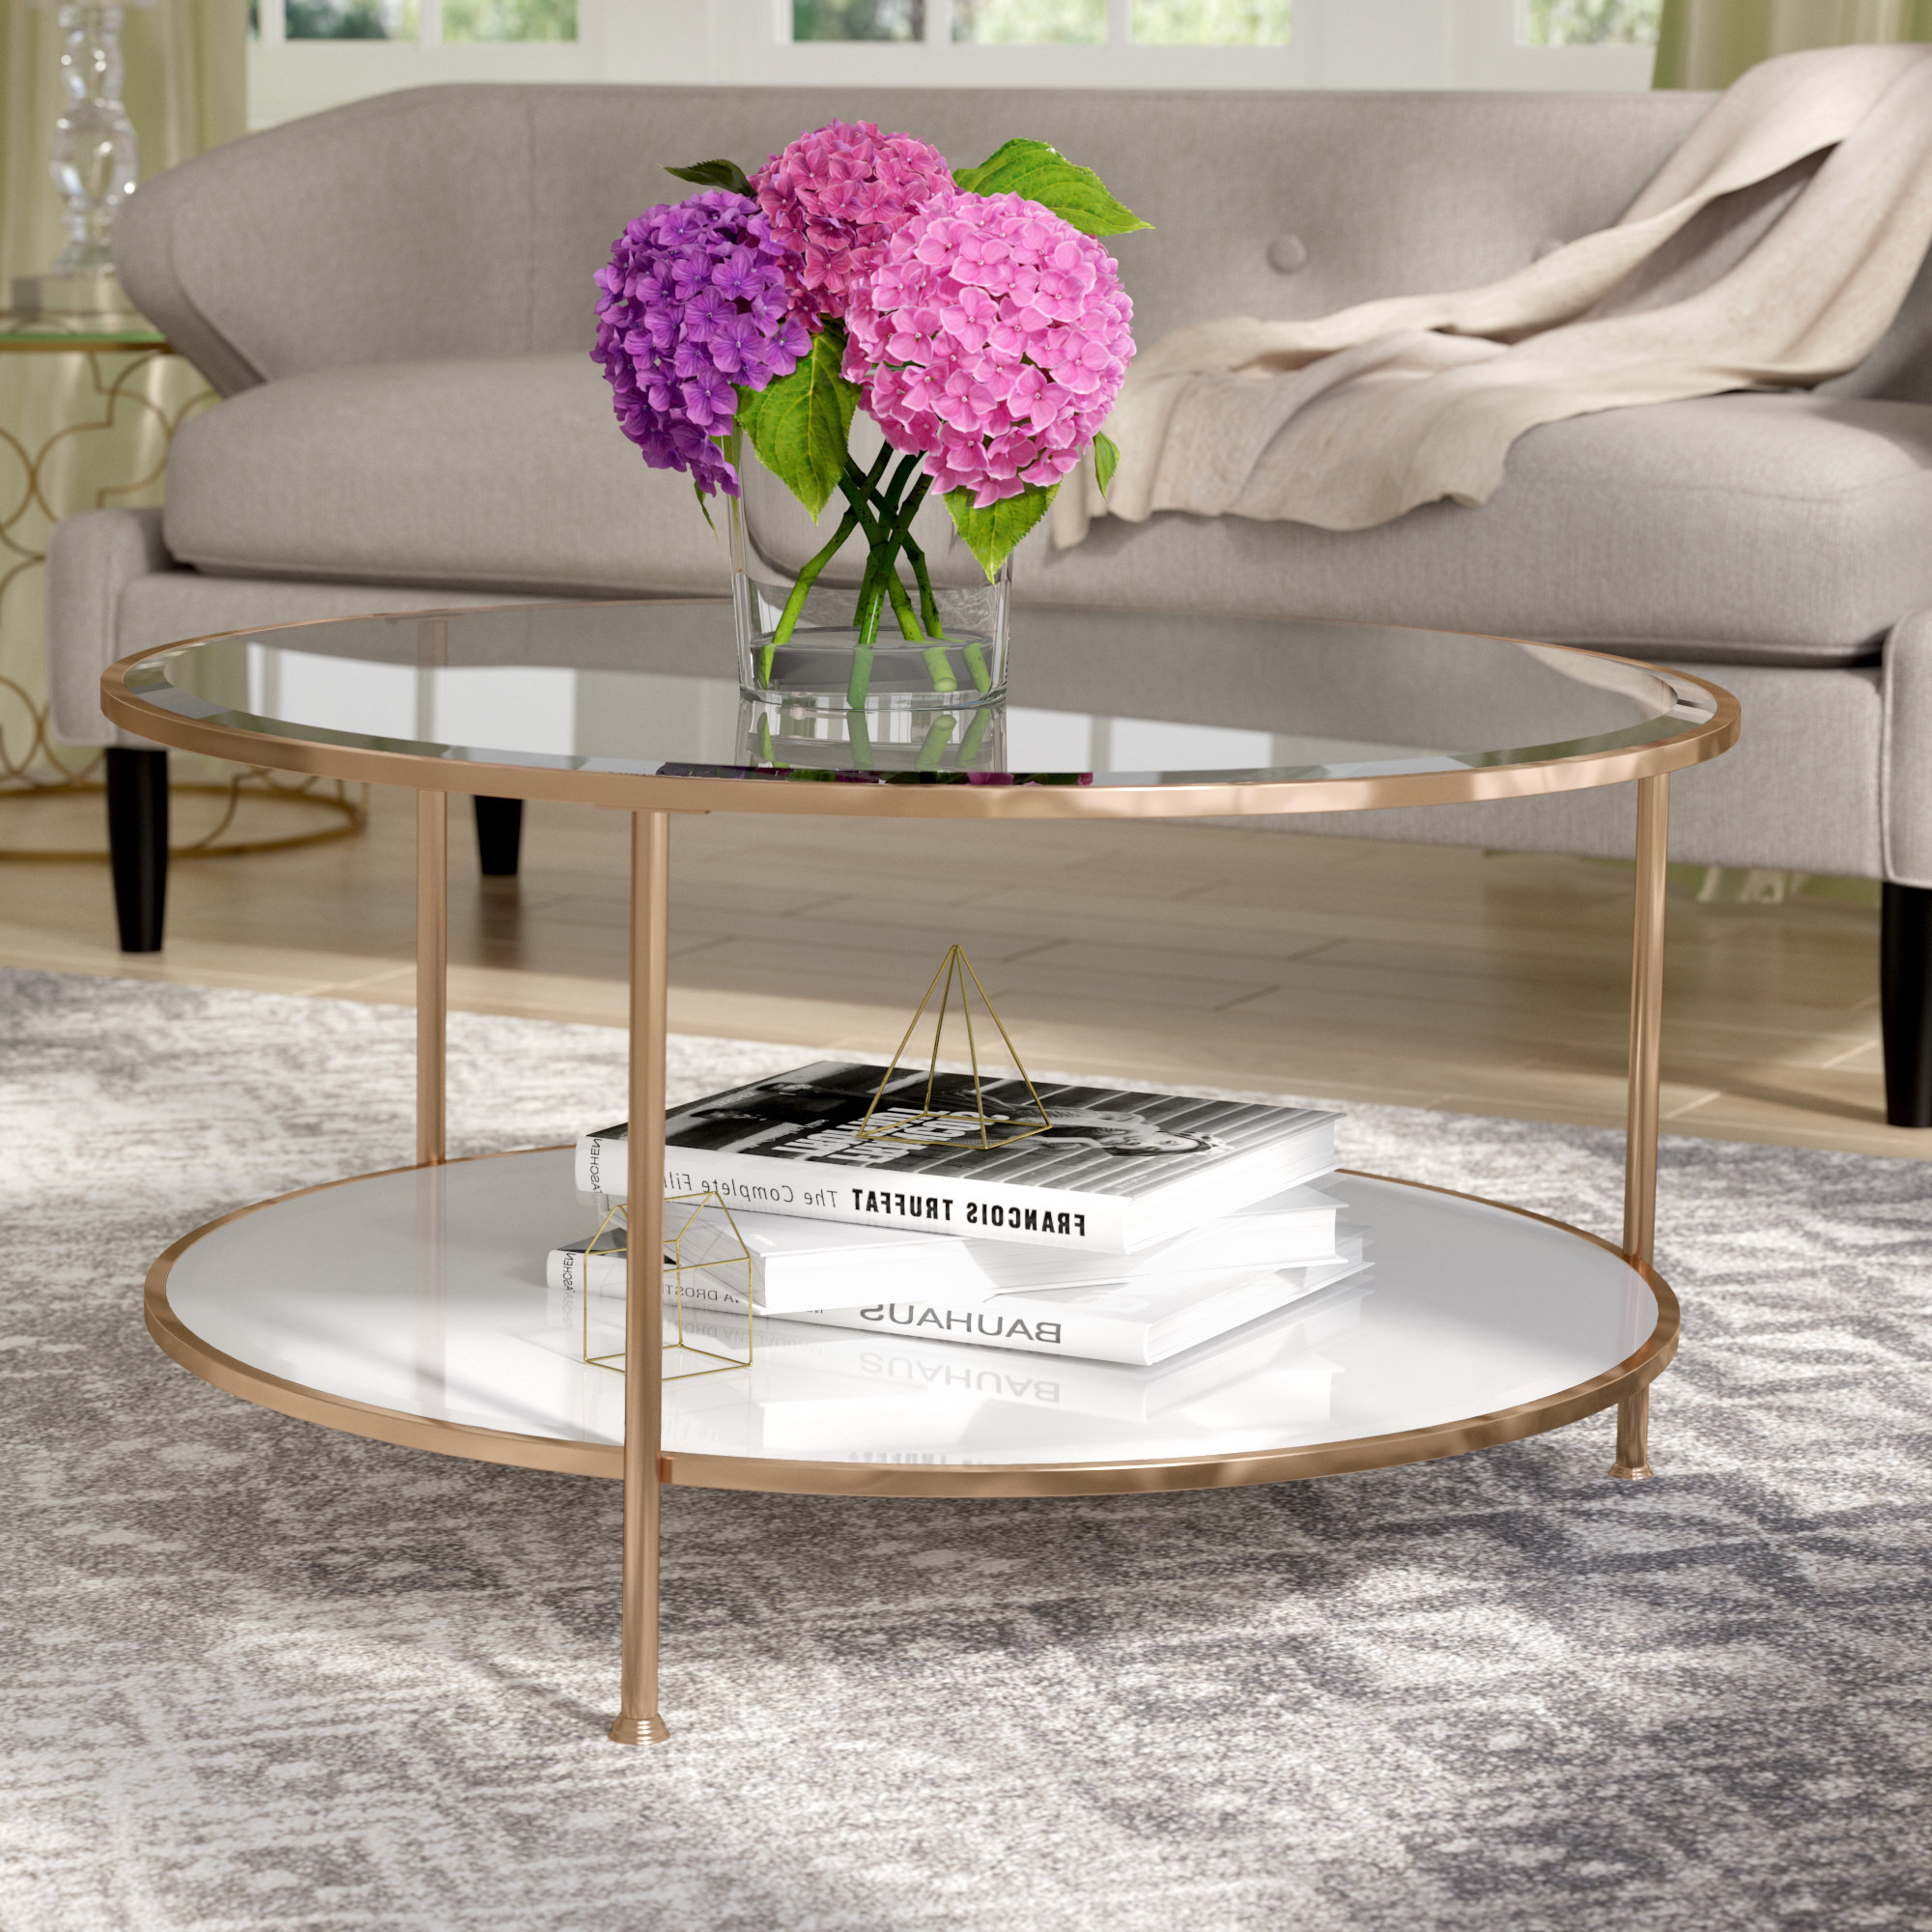 Wayfair Regarding Most Recent Round White Wash Brass Painted Coffee Tables (View 19 of 20)